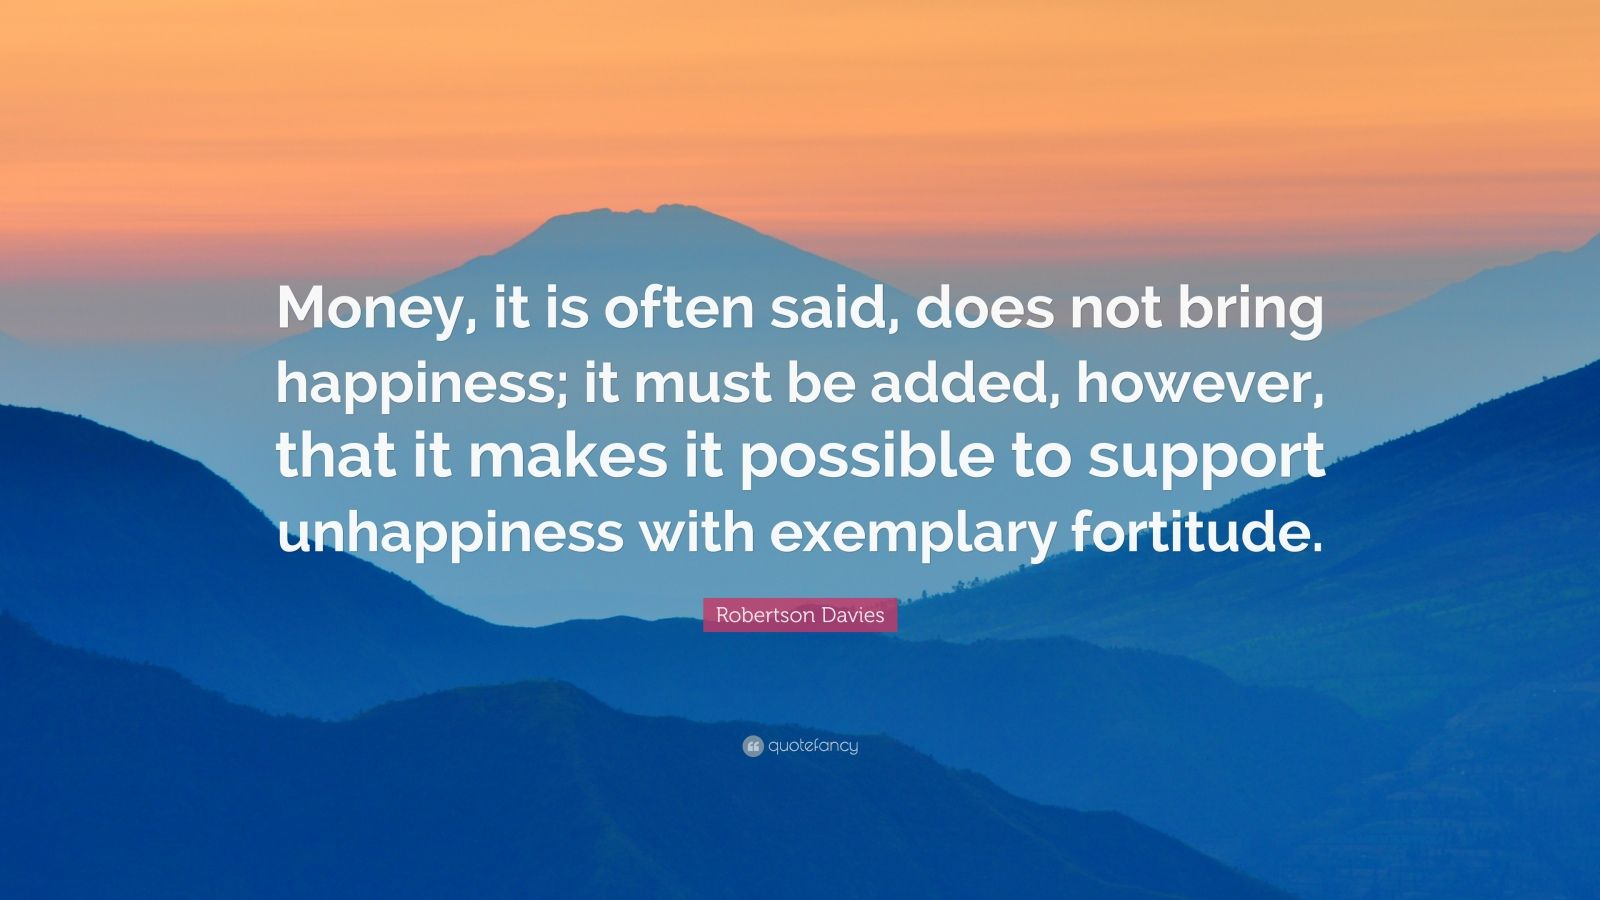 "Robertson Davies Quote: ""Money, it is often said, does not bring happiness; it must be added, however, that it makes it possible to support unhappiness with exemplary fortitude."""